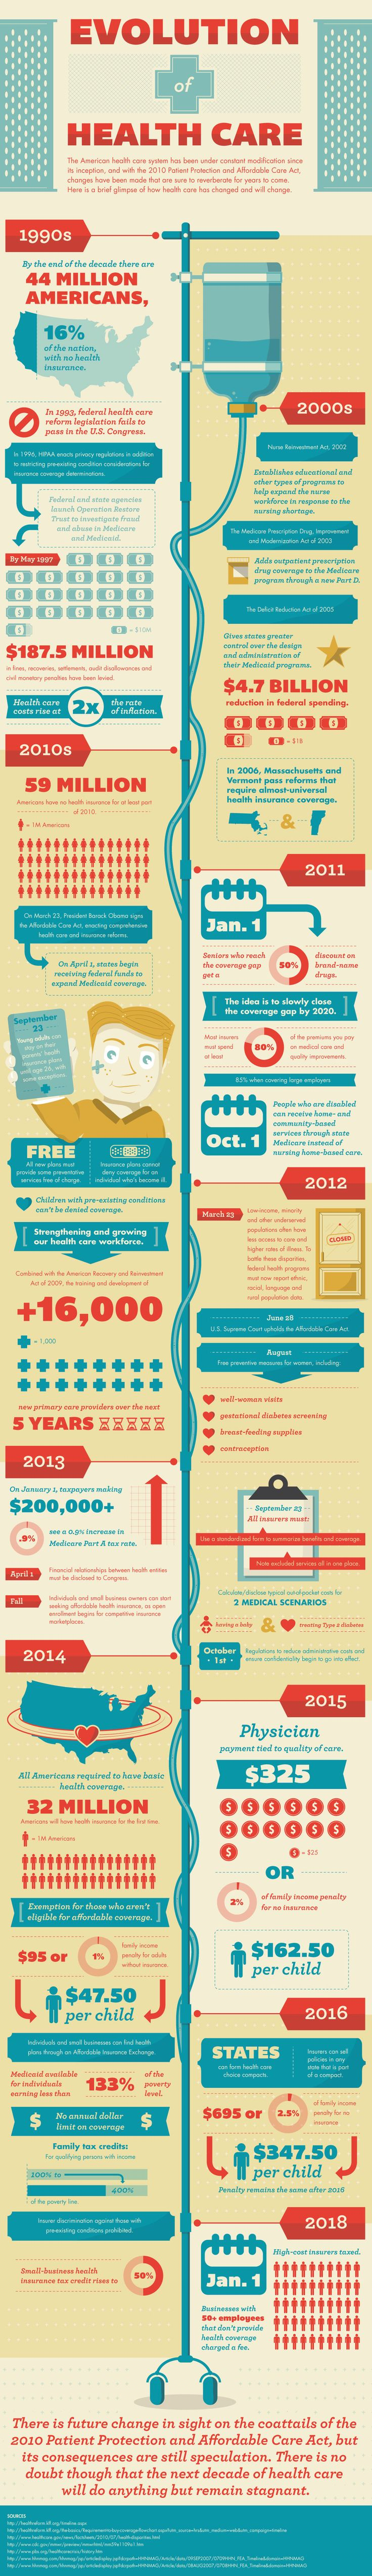 Evolution of Health Care  #infographic #Healthcare #Health